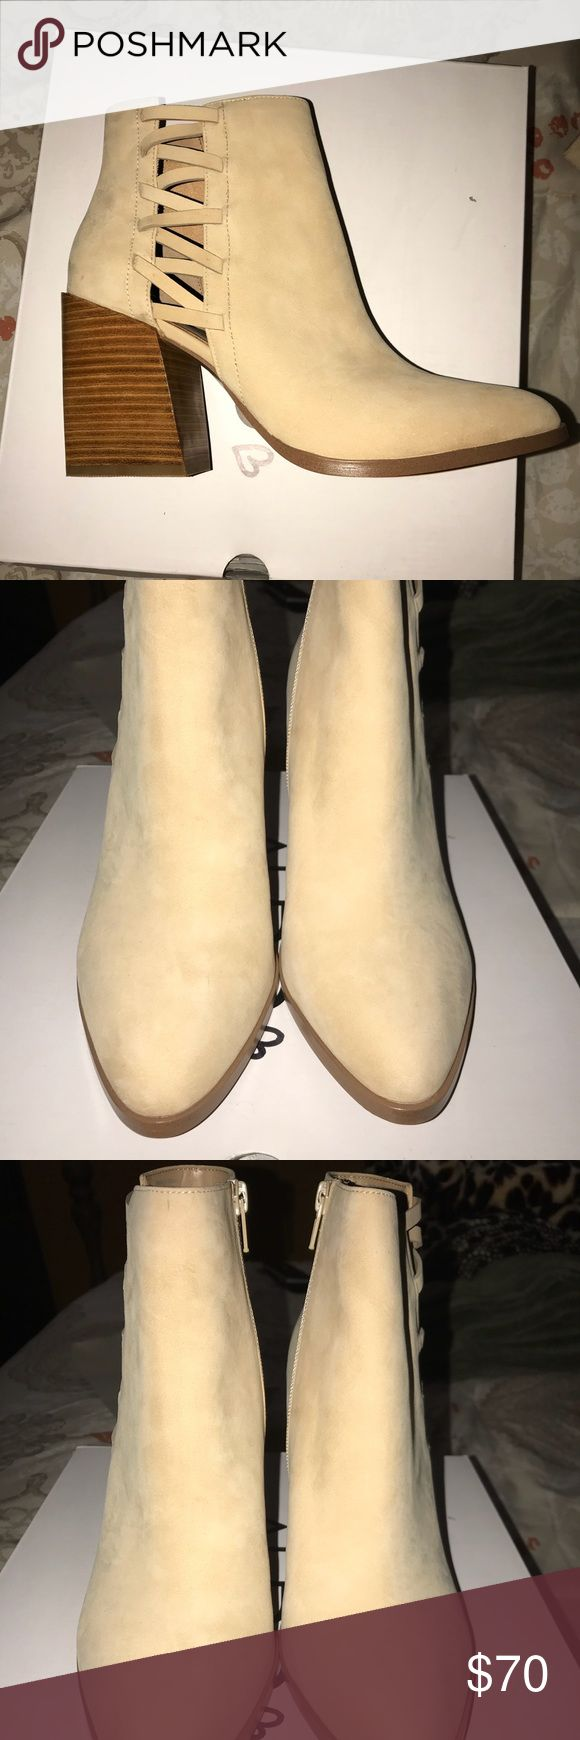 ALDO BNIB Alenama-32 Beige Booties Brand new in box. Never worn. Tried once. Fits true to size. No rips, tears or stains. Smoke & pet free home. Aldo Shoes Ankle Boots & Booties